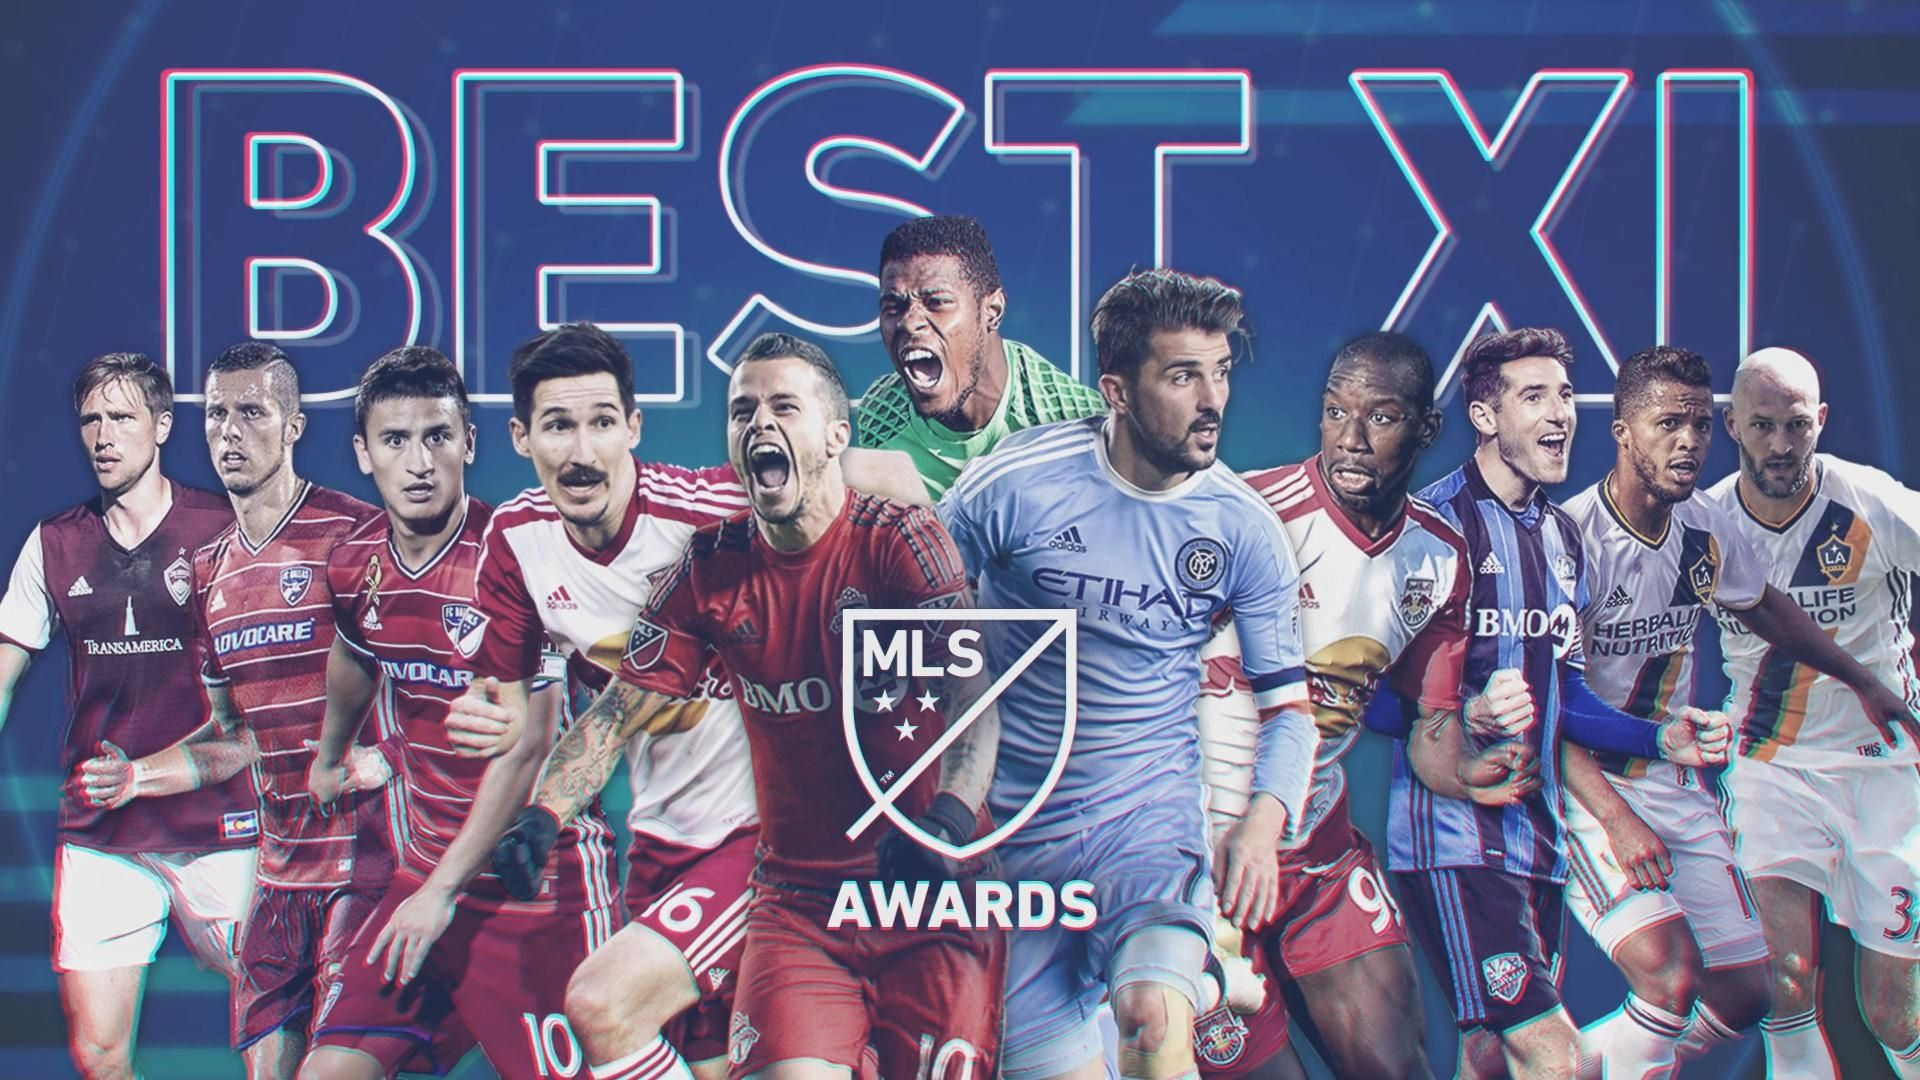 Video via MLS: 2016 MLS best starting XI